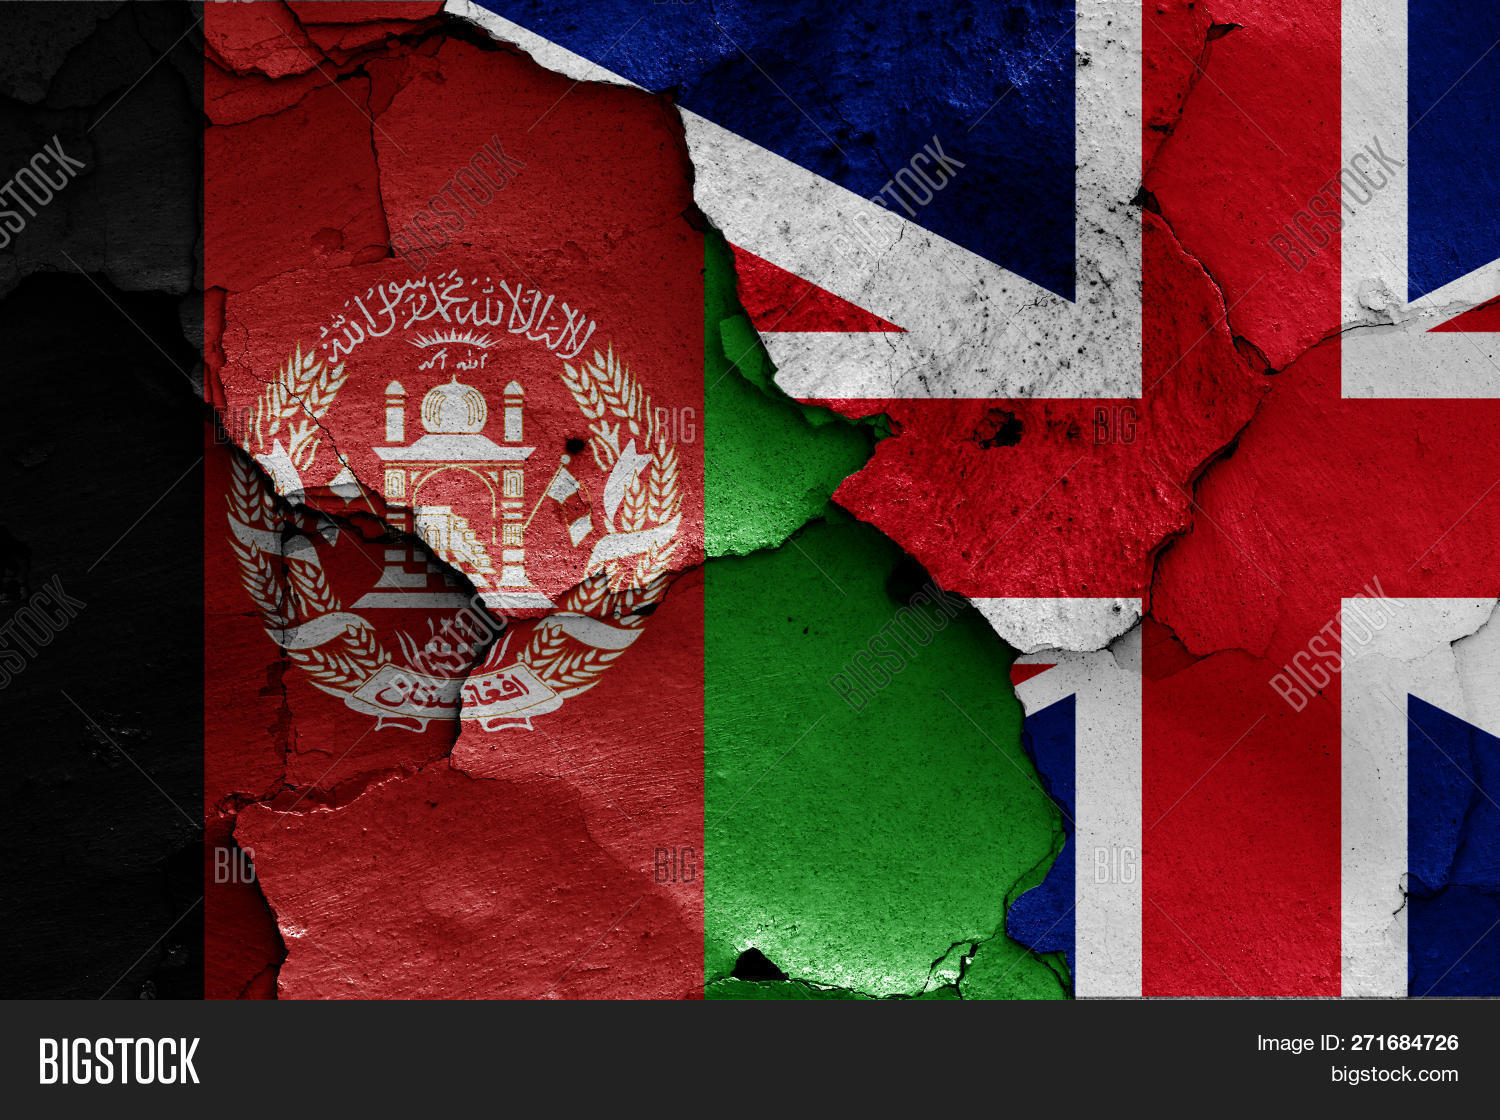 """GREAT BRITAIN BRITISH FLAG ART WALL LARGE IMAGE GIANT POSTER /"""""""